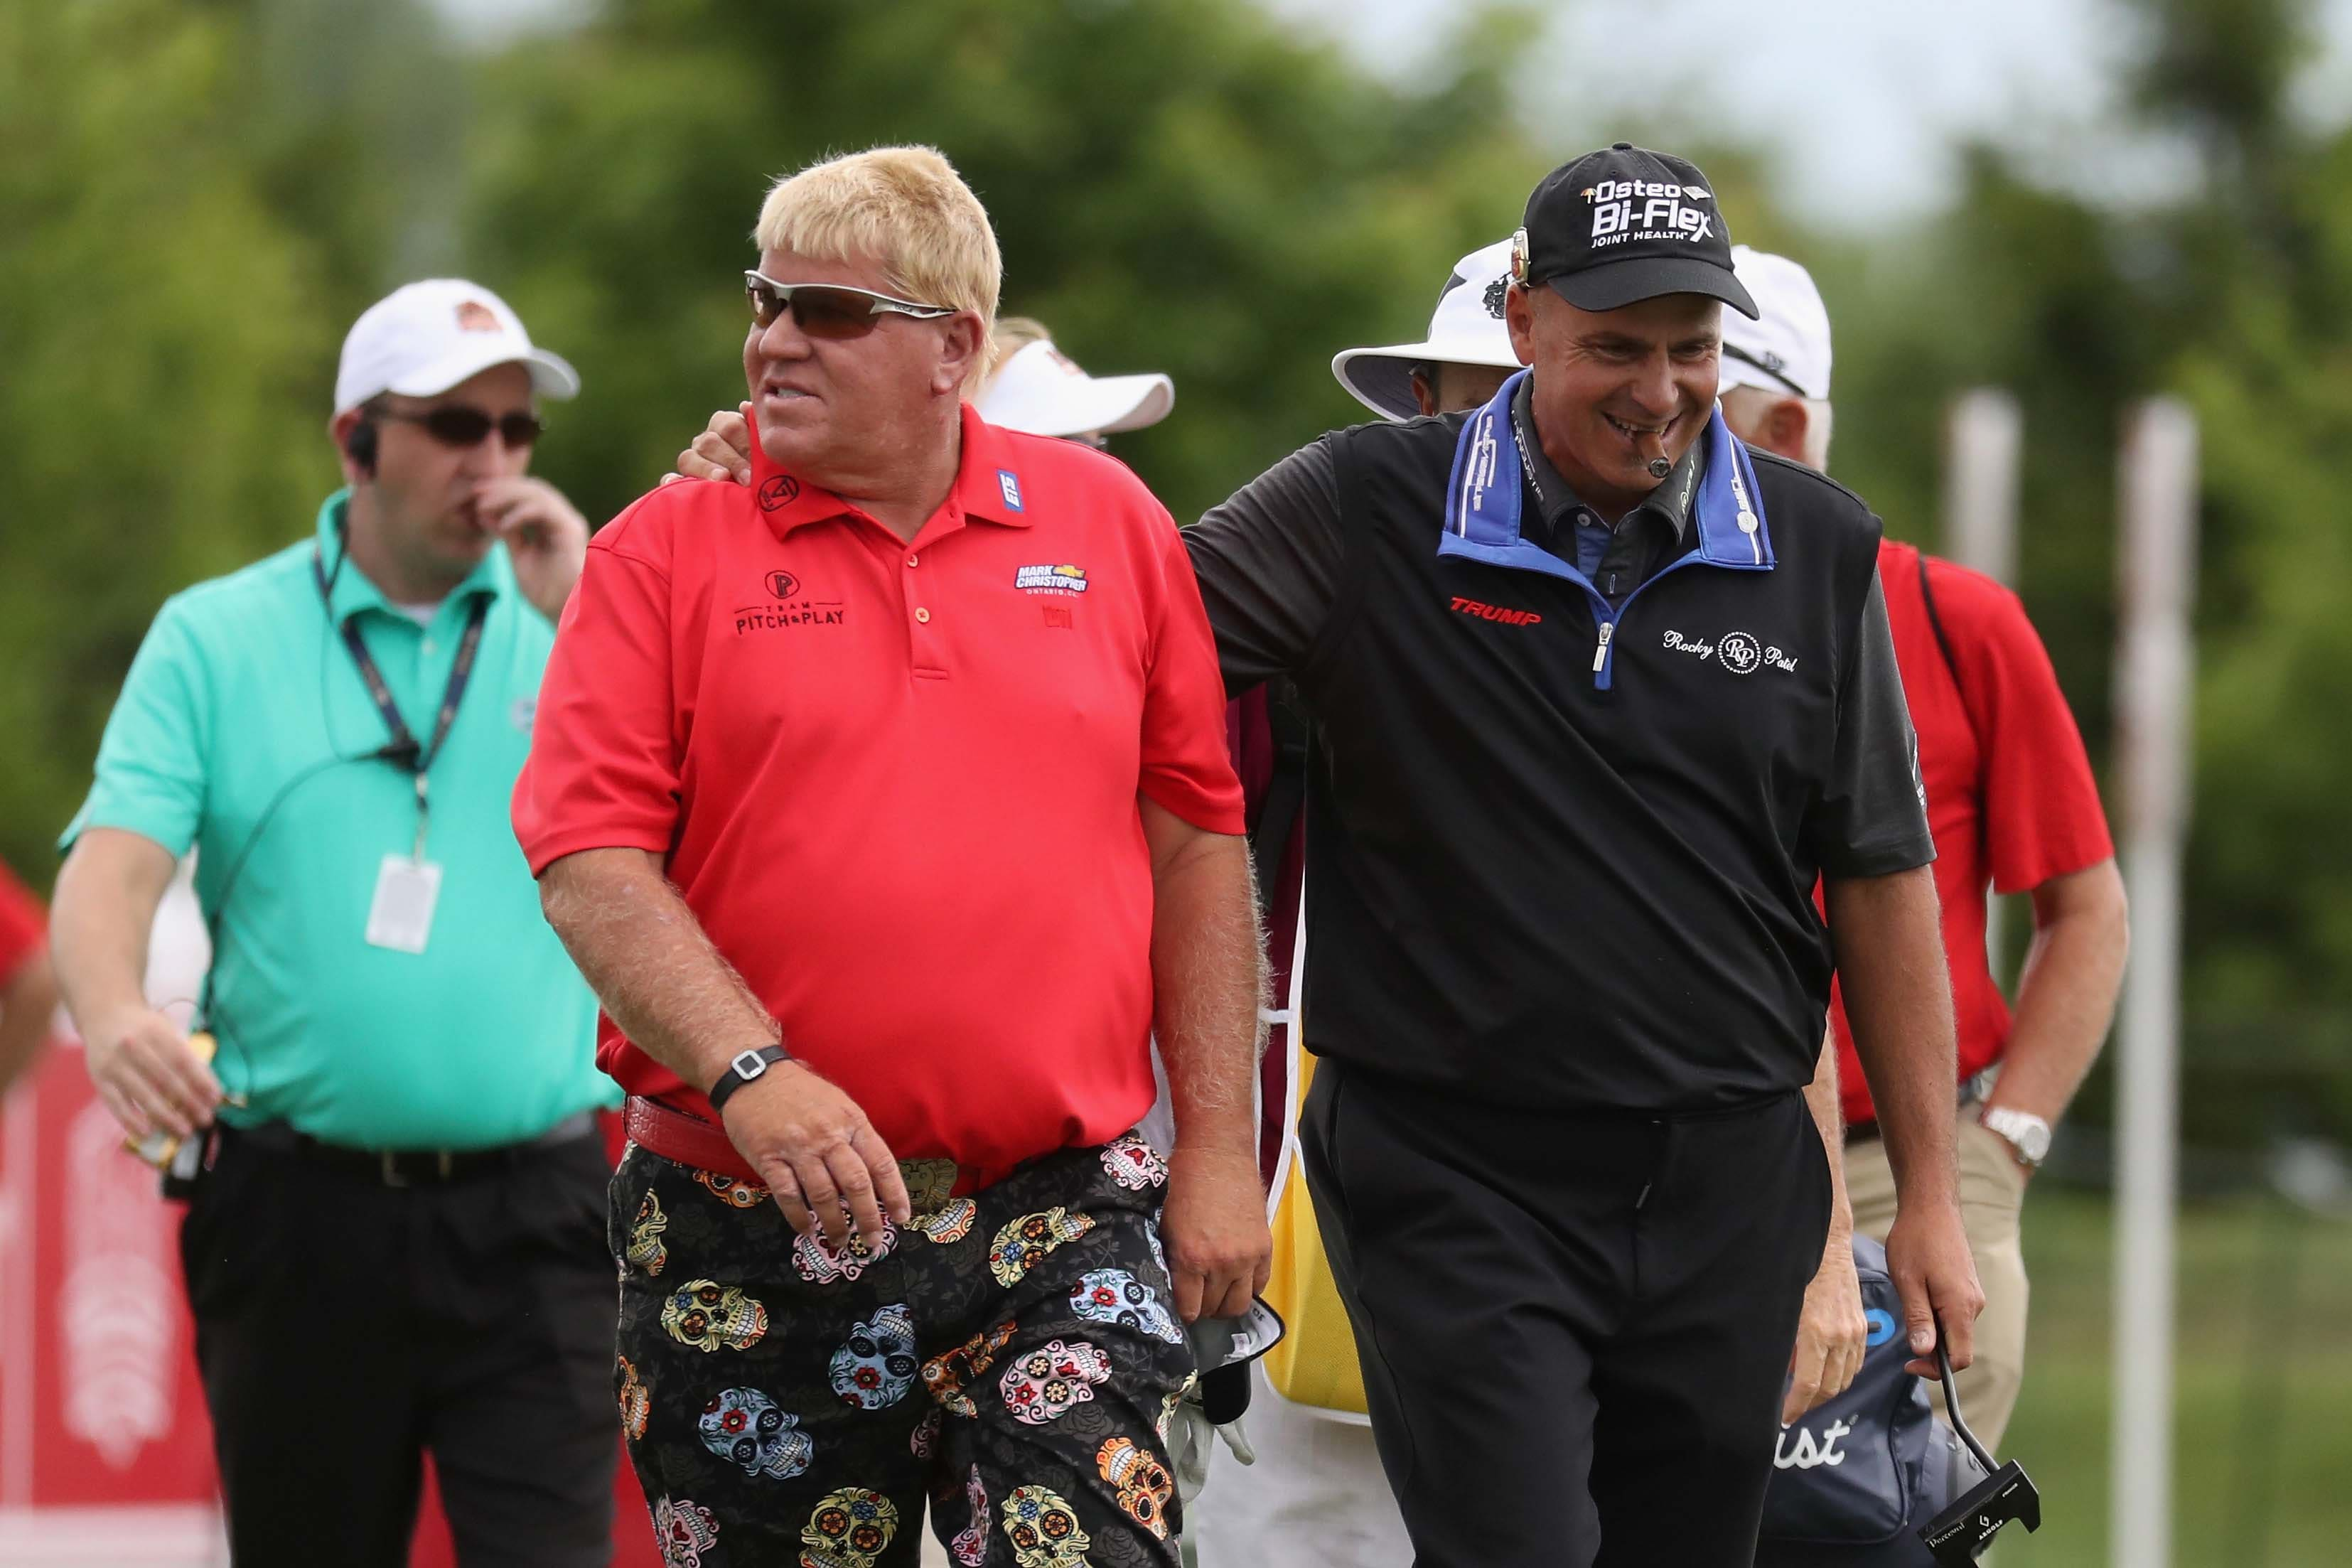 John Daly and Rocco Mediate